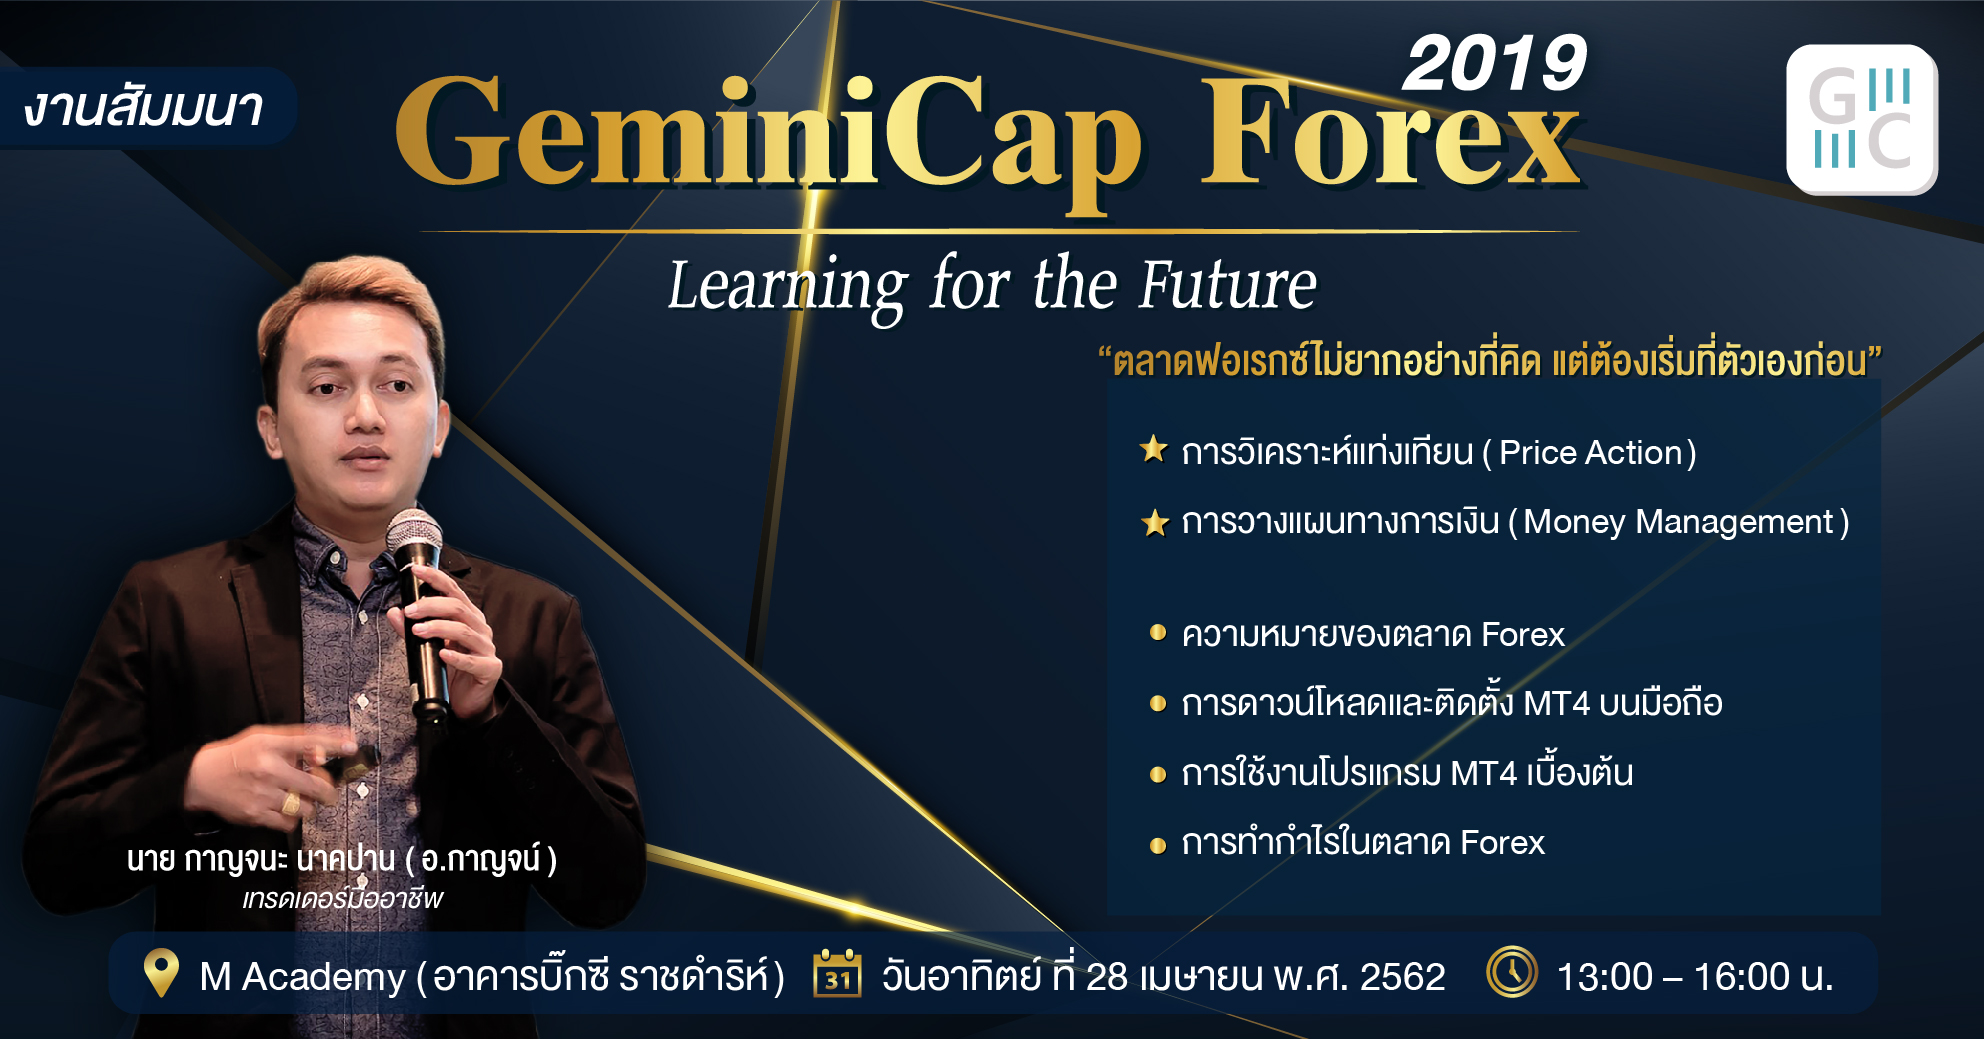 GeminiCap Forex Learning for the Future 2019 #1